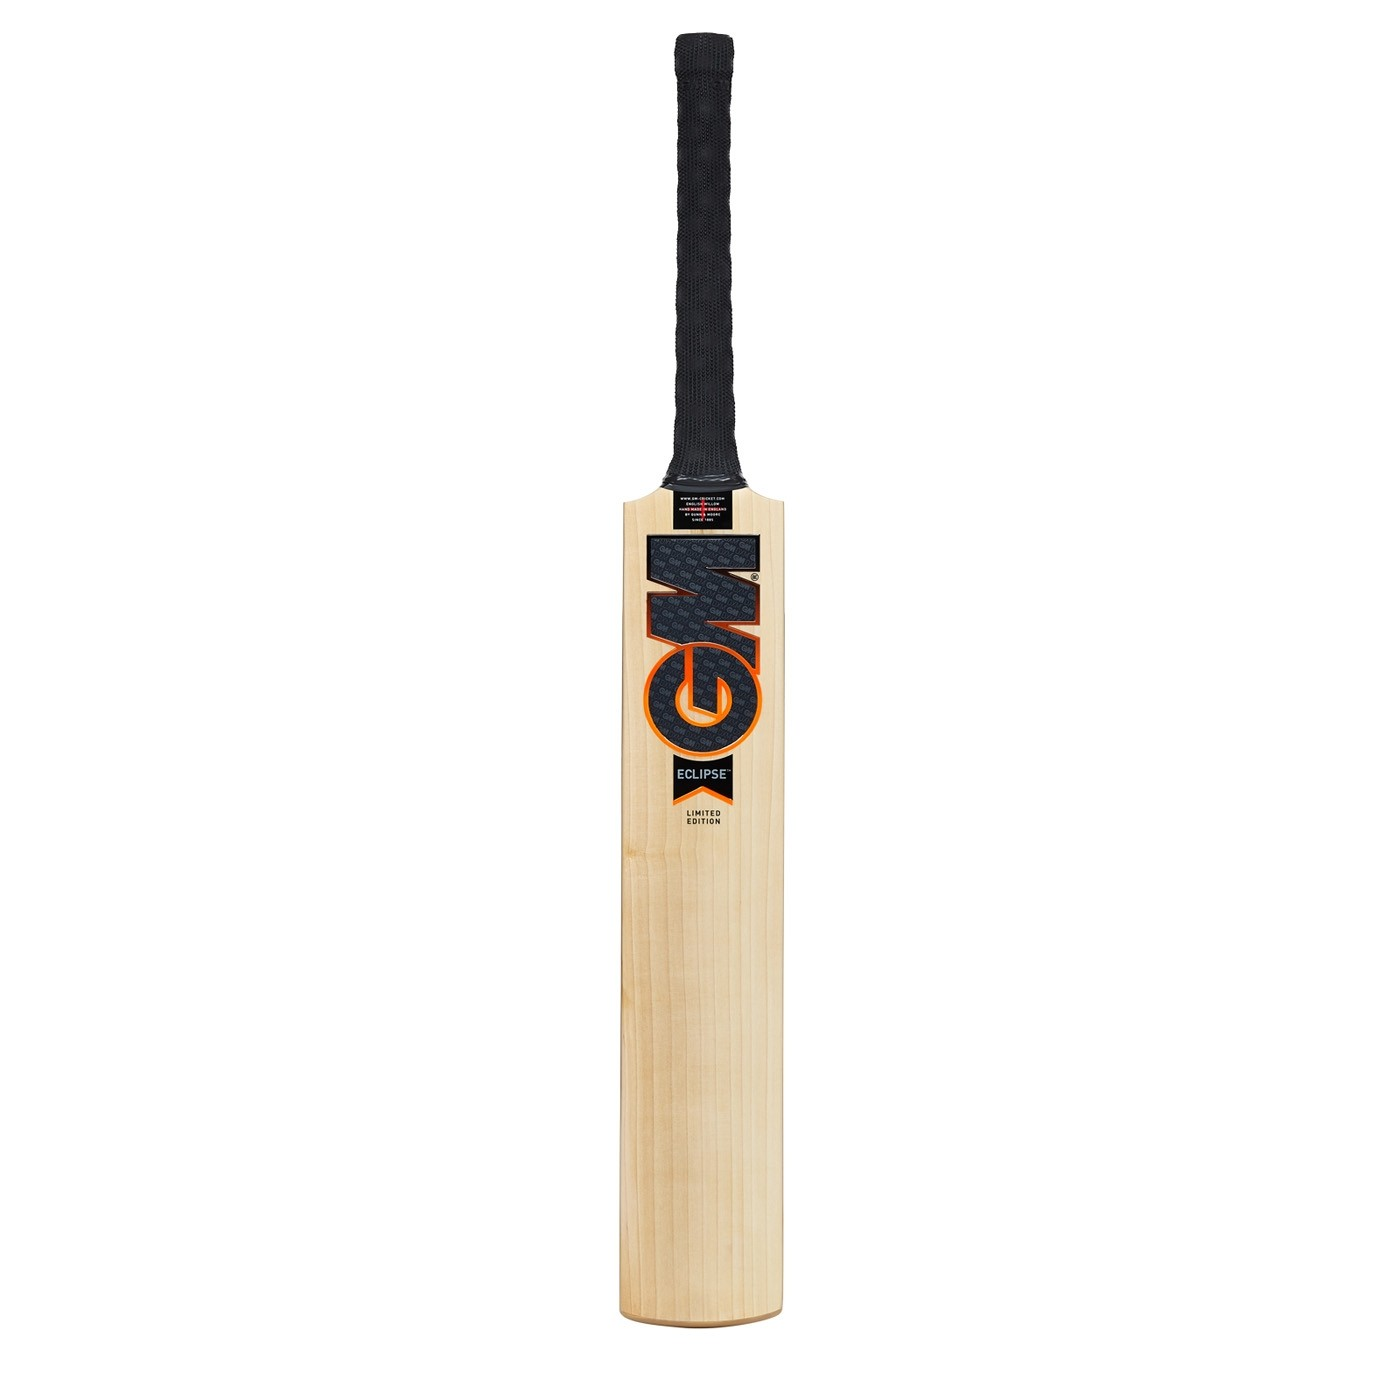 2020 Gunn and Moore Eclipse DXM 606 Cricket Bat